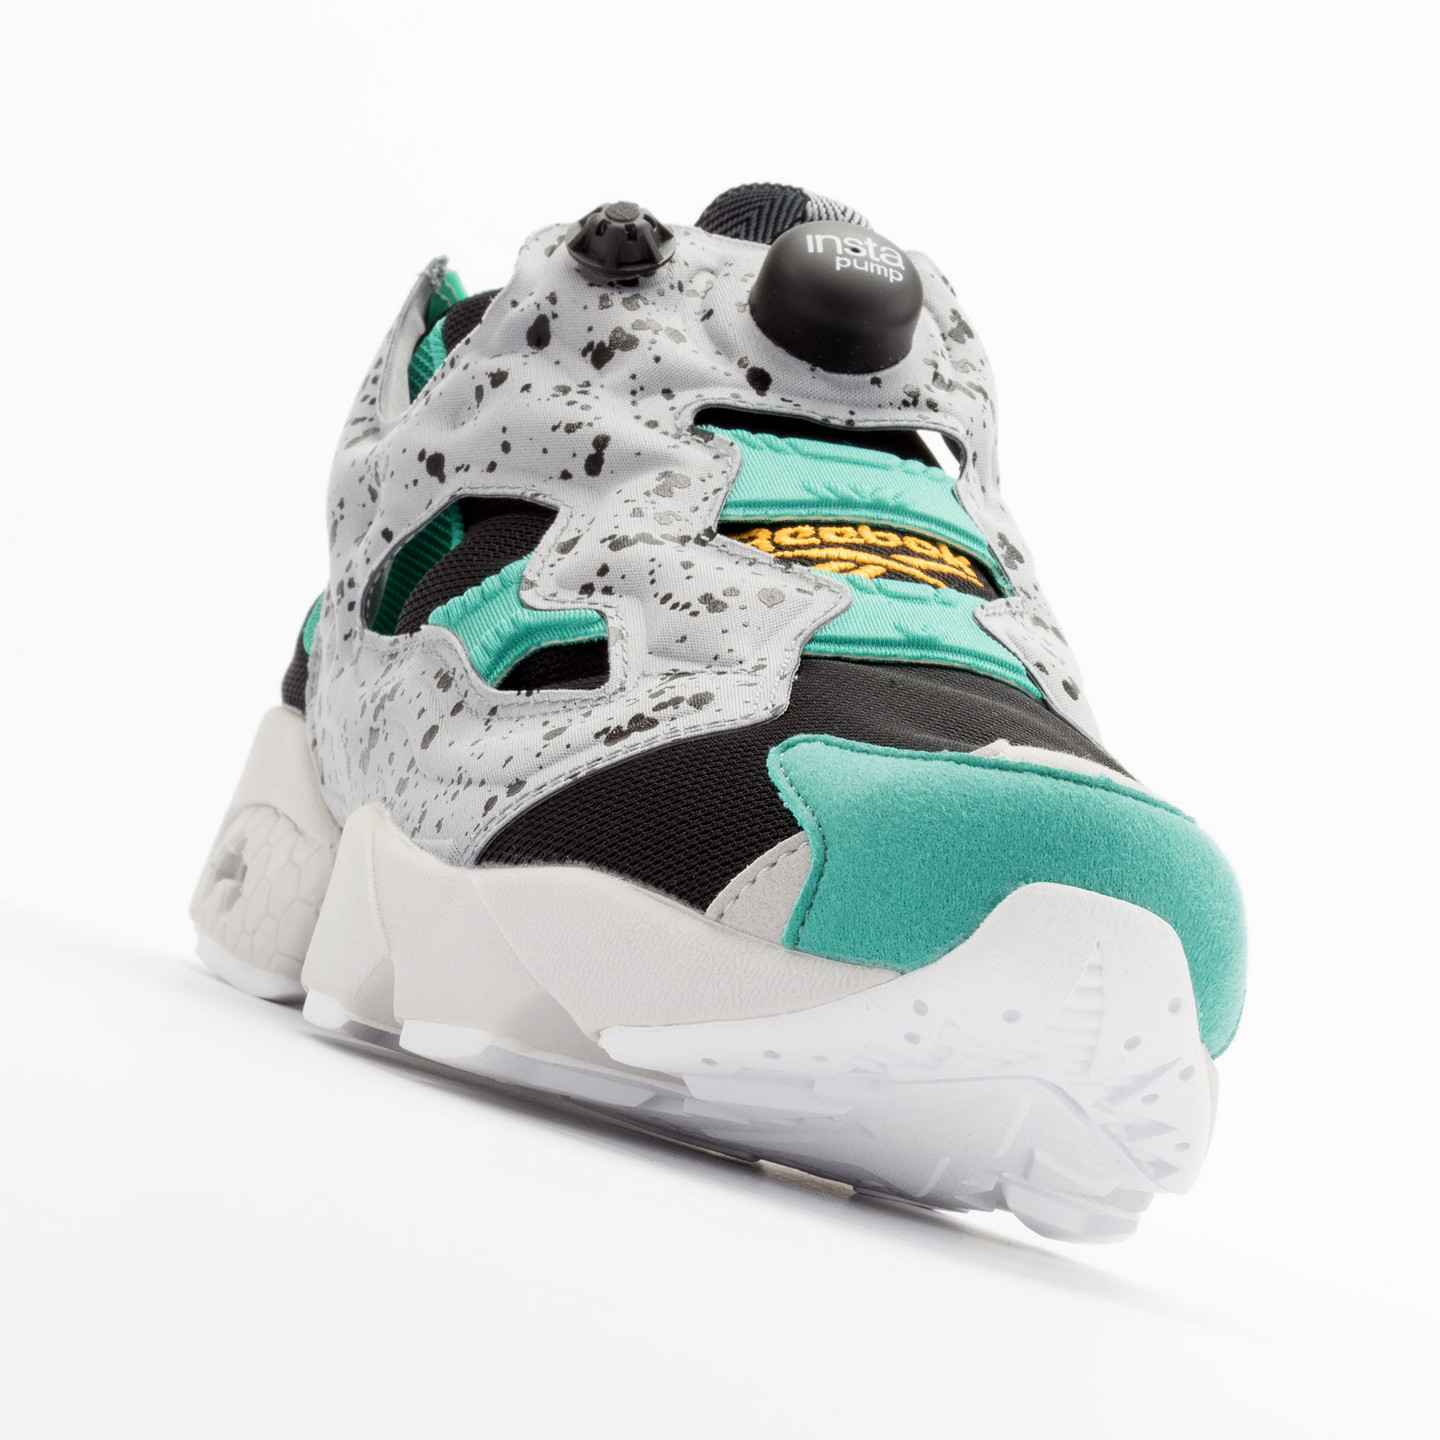 Reebok Instapump Fury SP Black / Grey / Green / Gold V66115-44